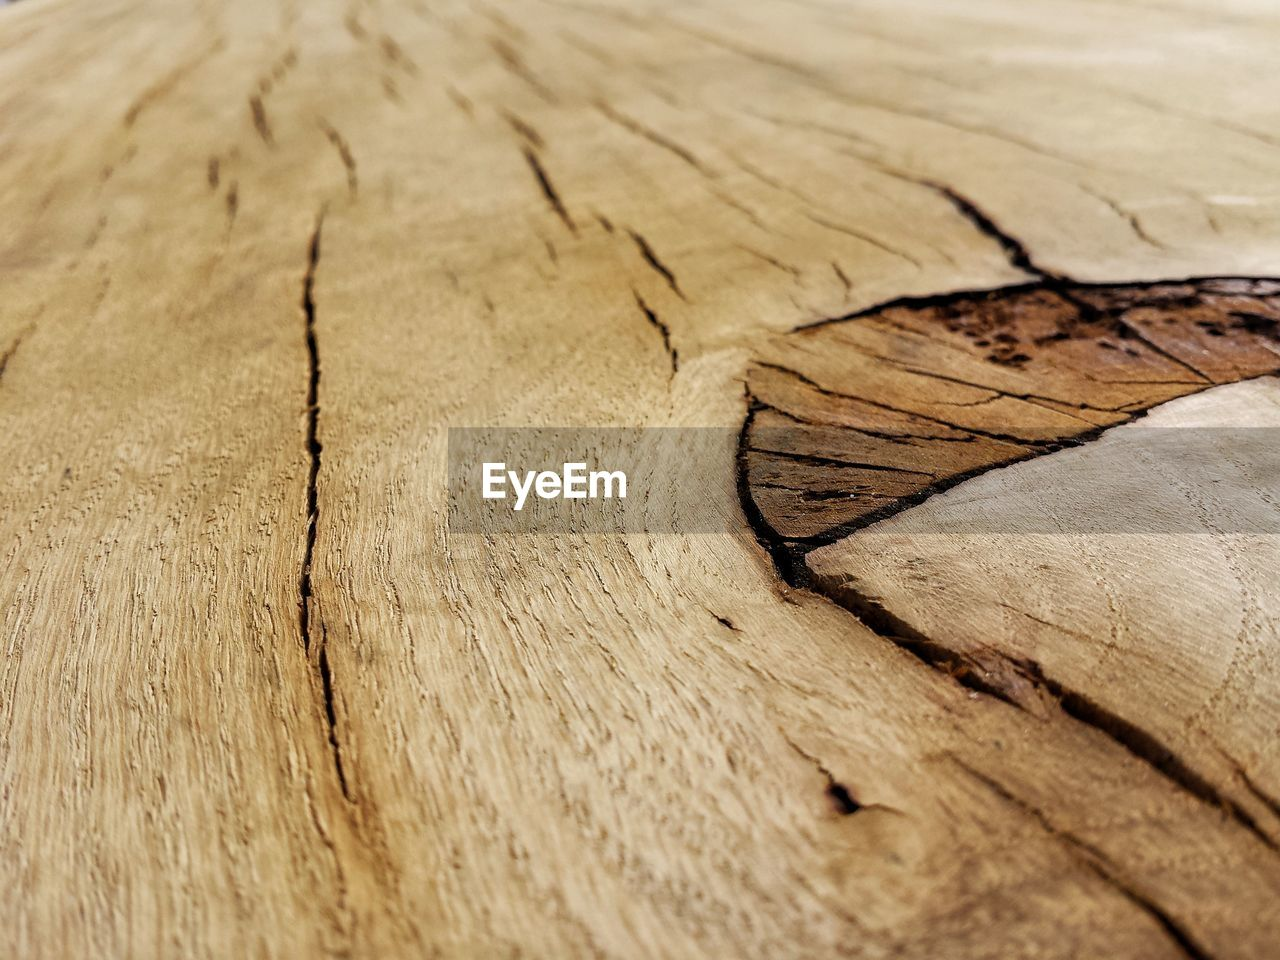 wood - material, pattern, cracked, full frame, no people, close-up, textured, backgrounds, tree, day, brown, natural pattern, nature, outdoors, selective focus, wood, rough, high angle view, dry, bark, tree ring, climate, arid climate, wood grain